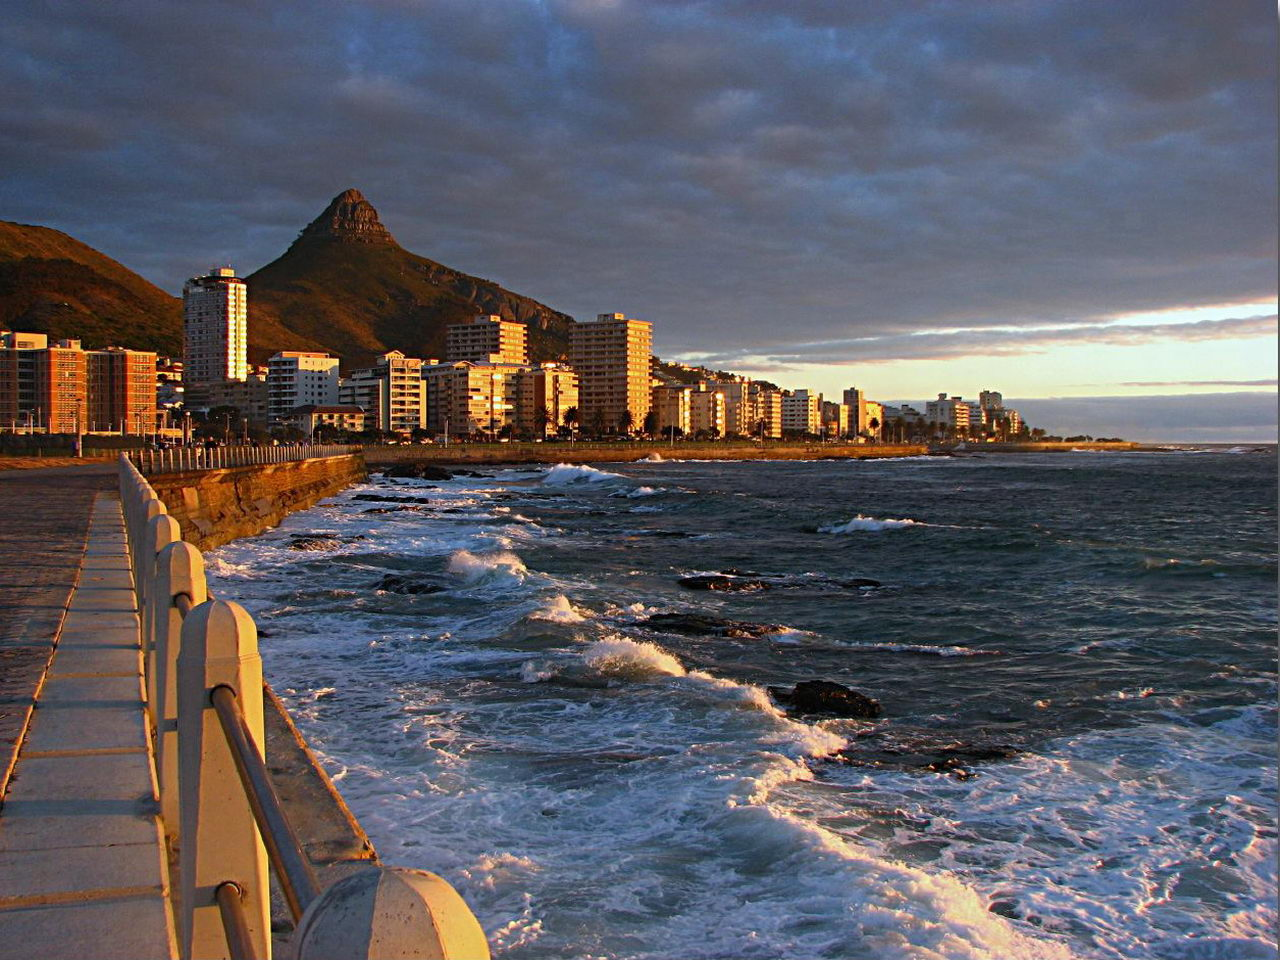 Cape Town South Africa HD Wallpapers HiRes IPhone Wallpaper City 1280x960